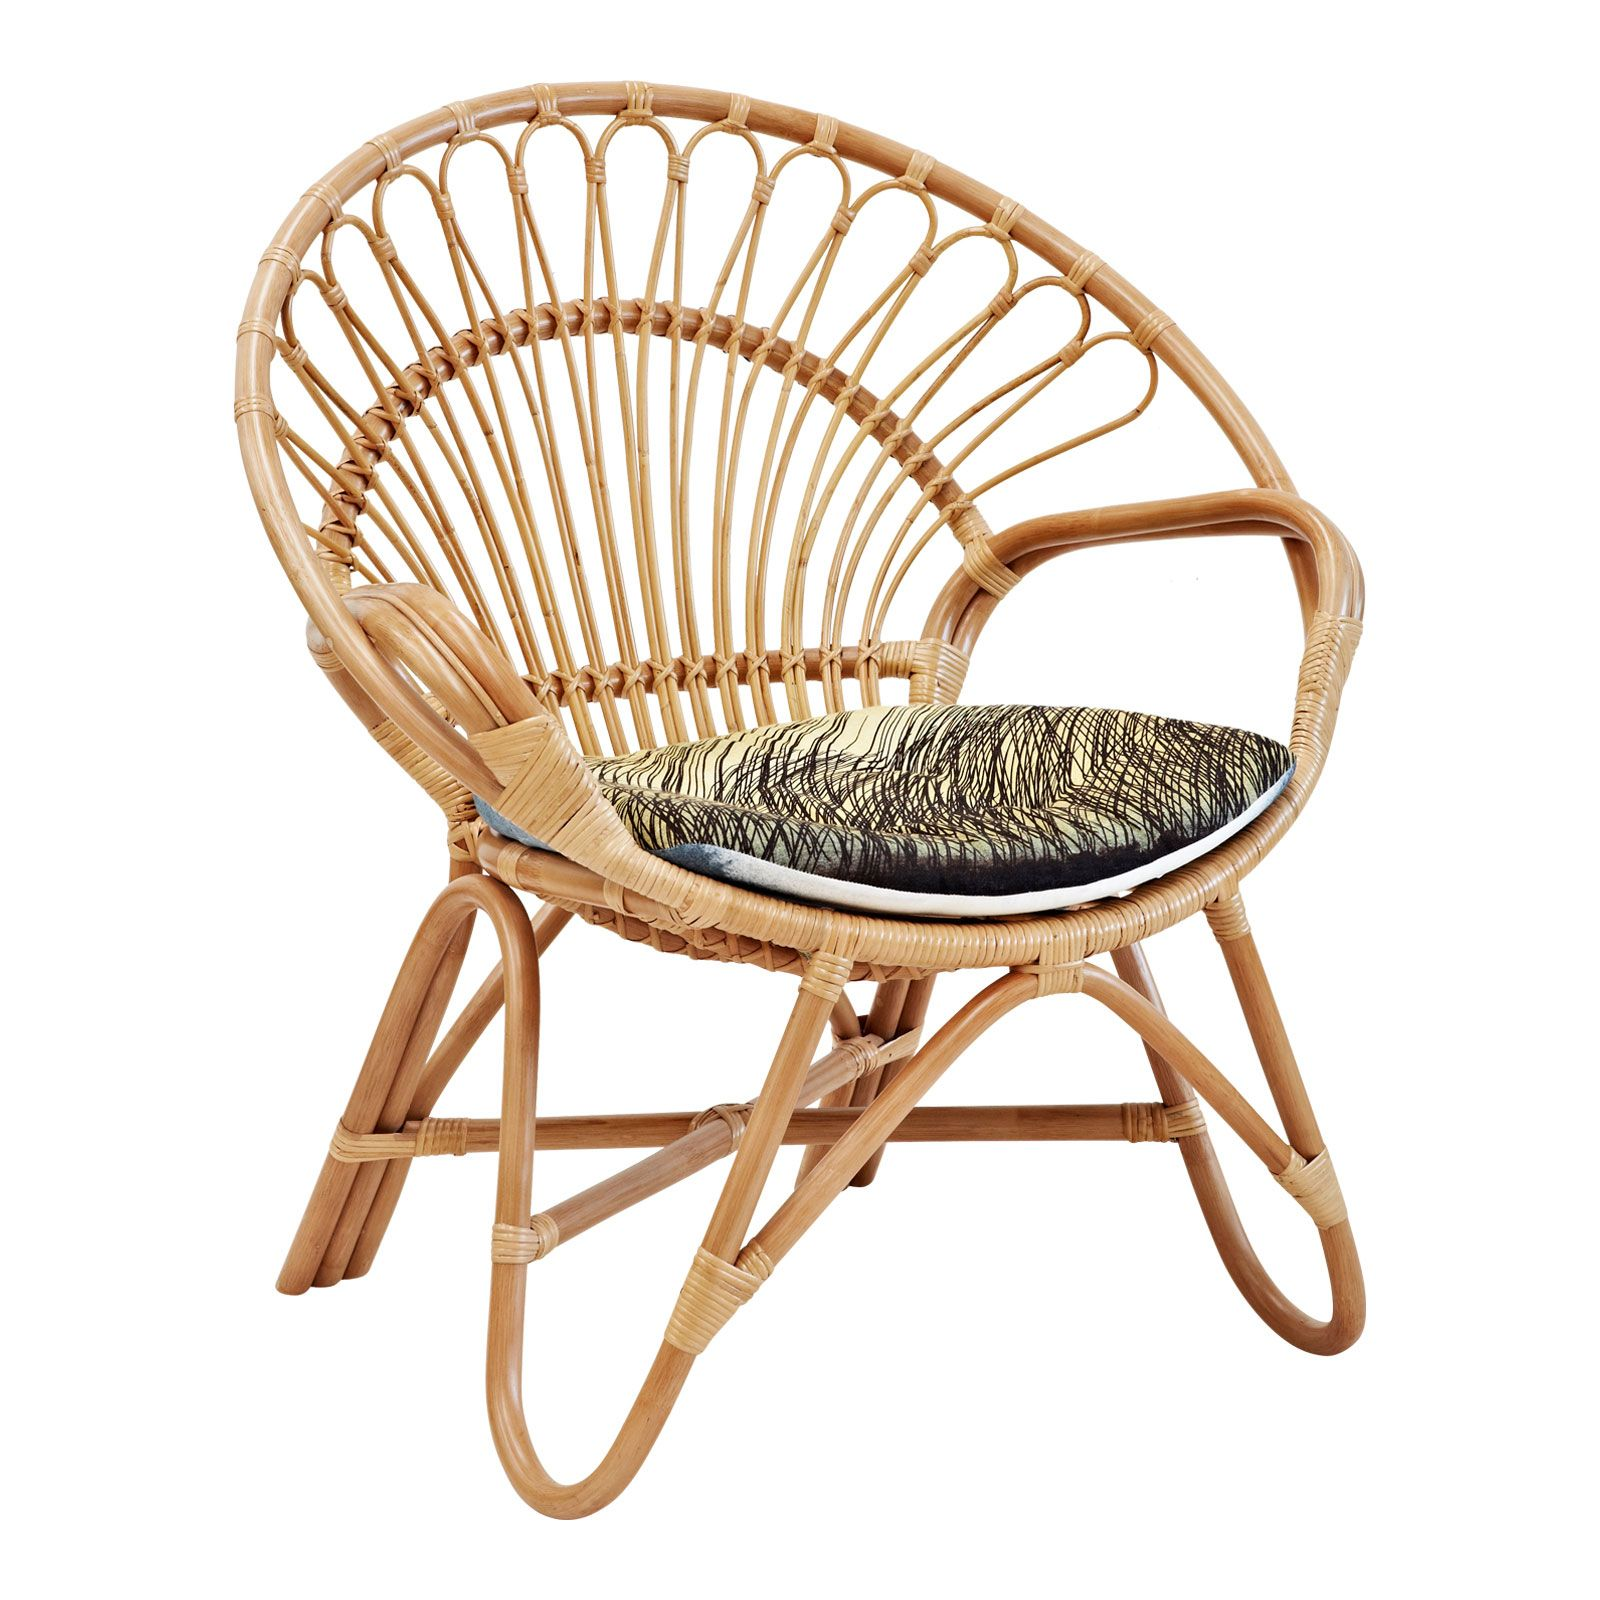 Round Bamboo Chair Antique Wicker Chairs Appealing Rattan For Outdoor Or Indoor Furniture